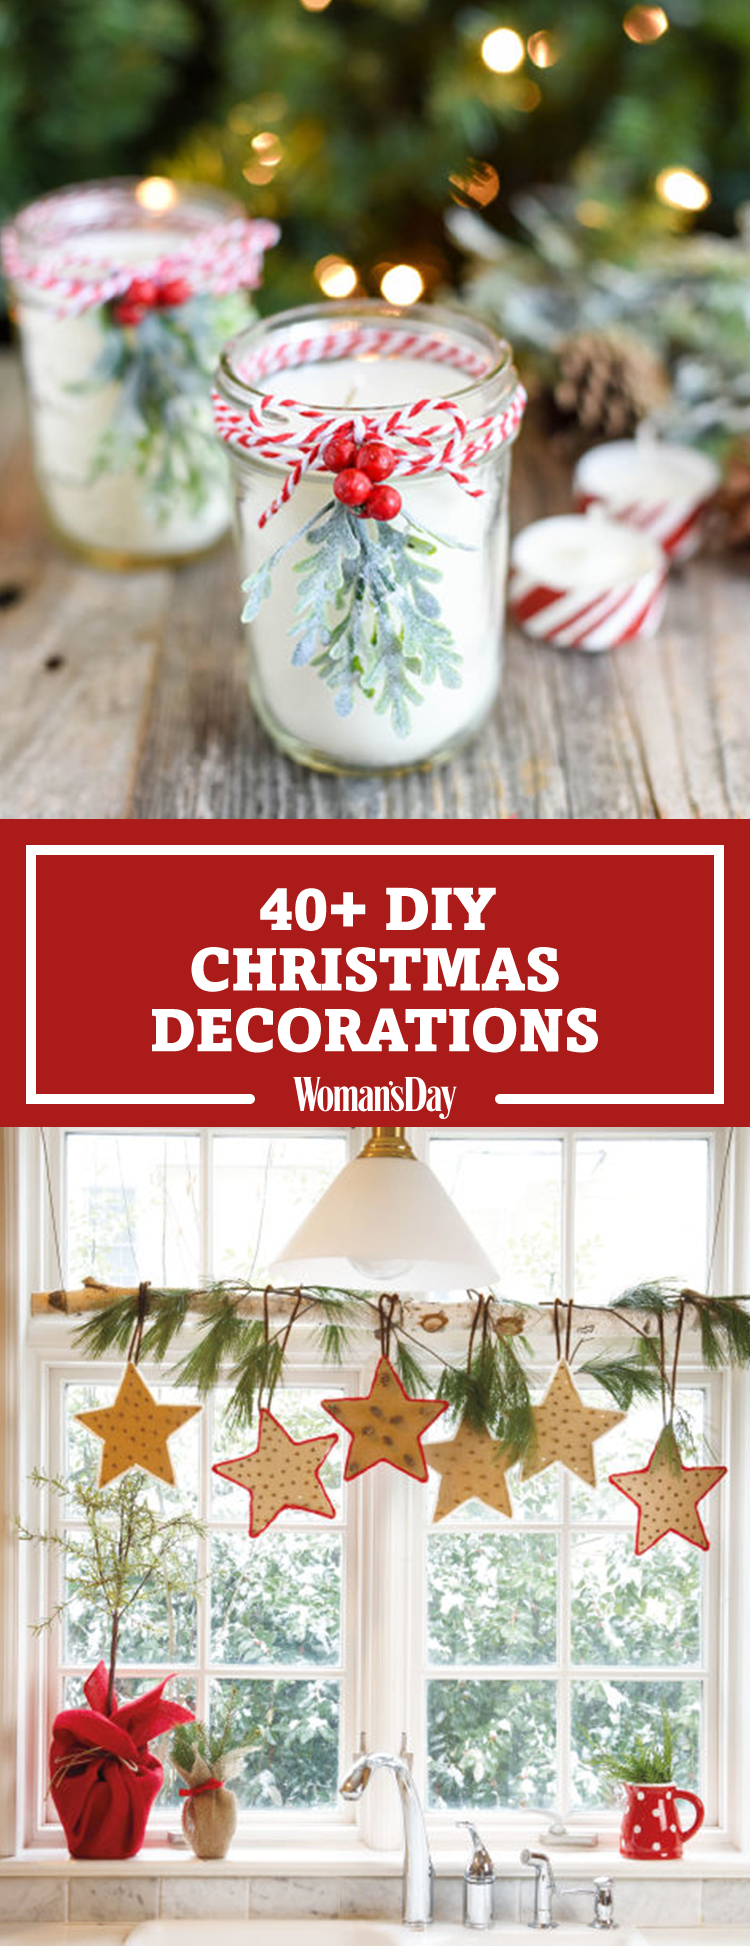 47 Easy Diy Christmas Decorations Homemade Ideas For